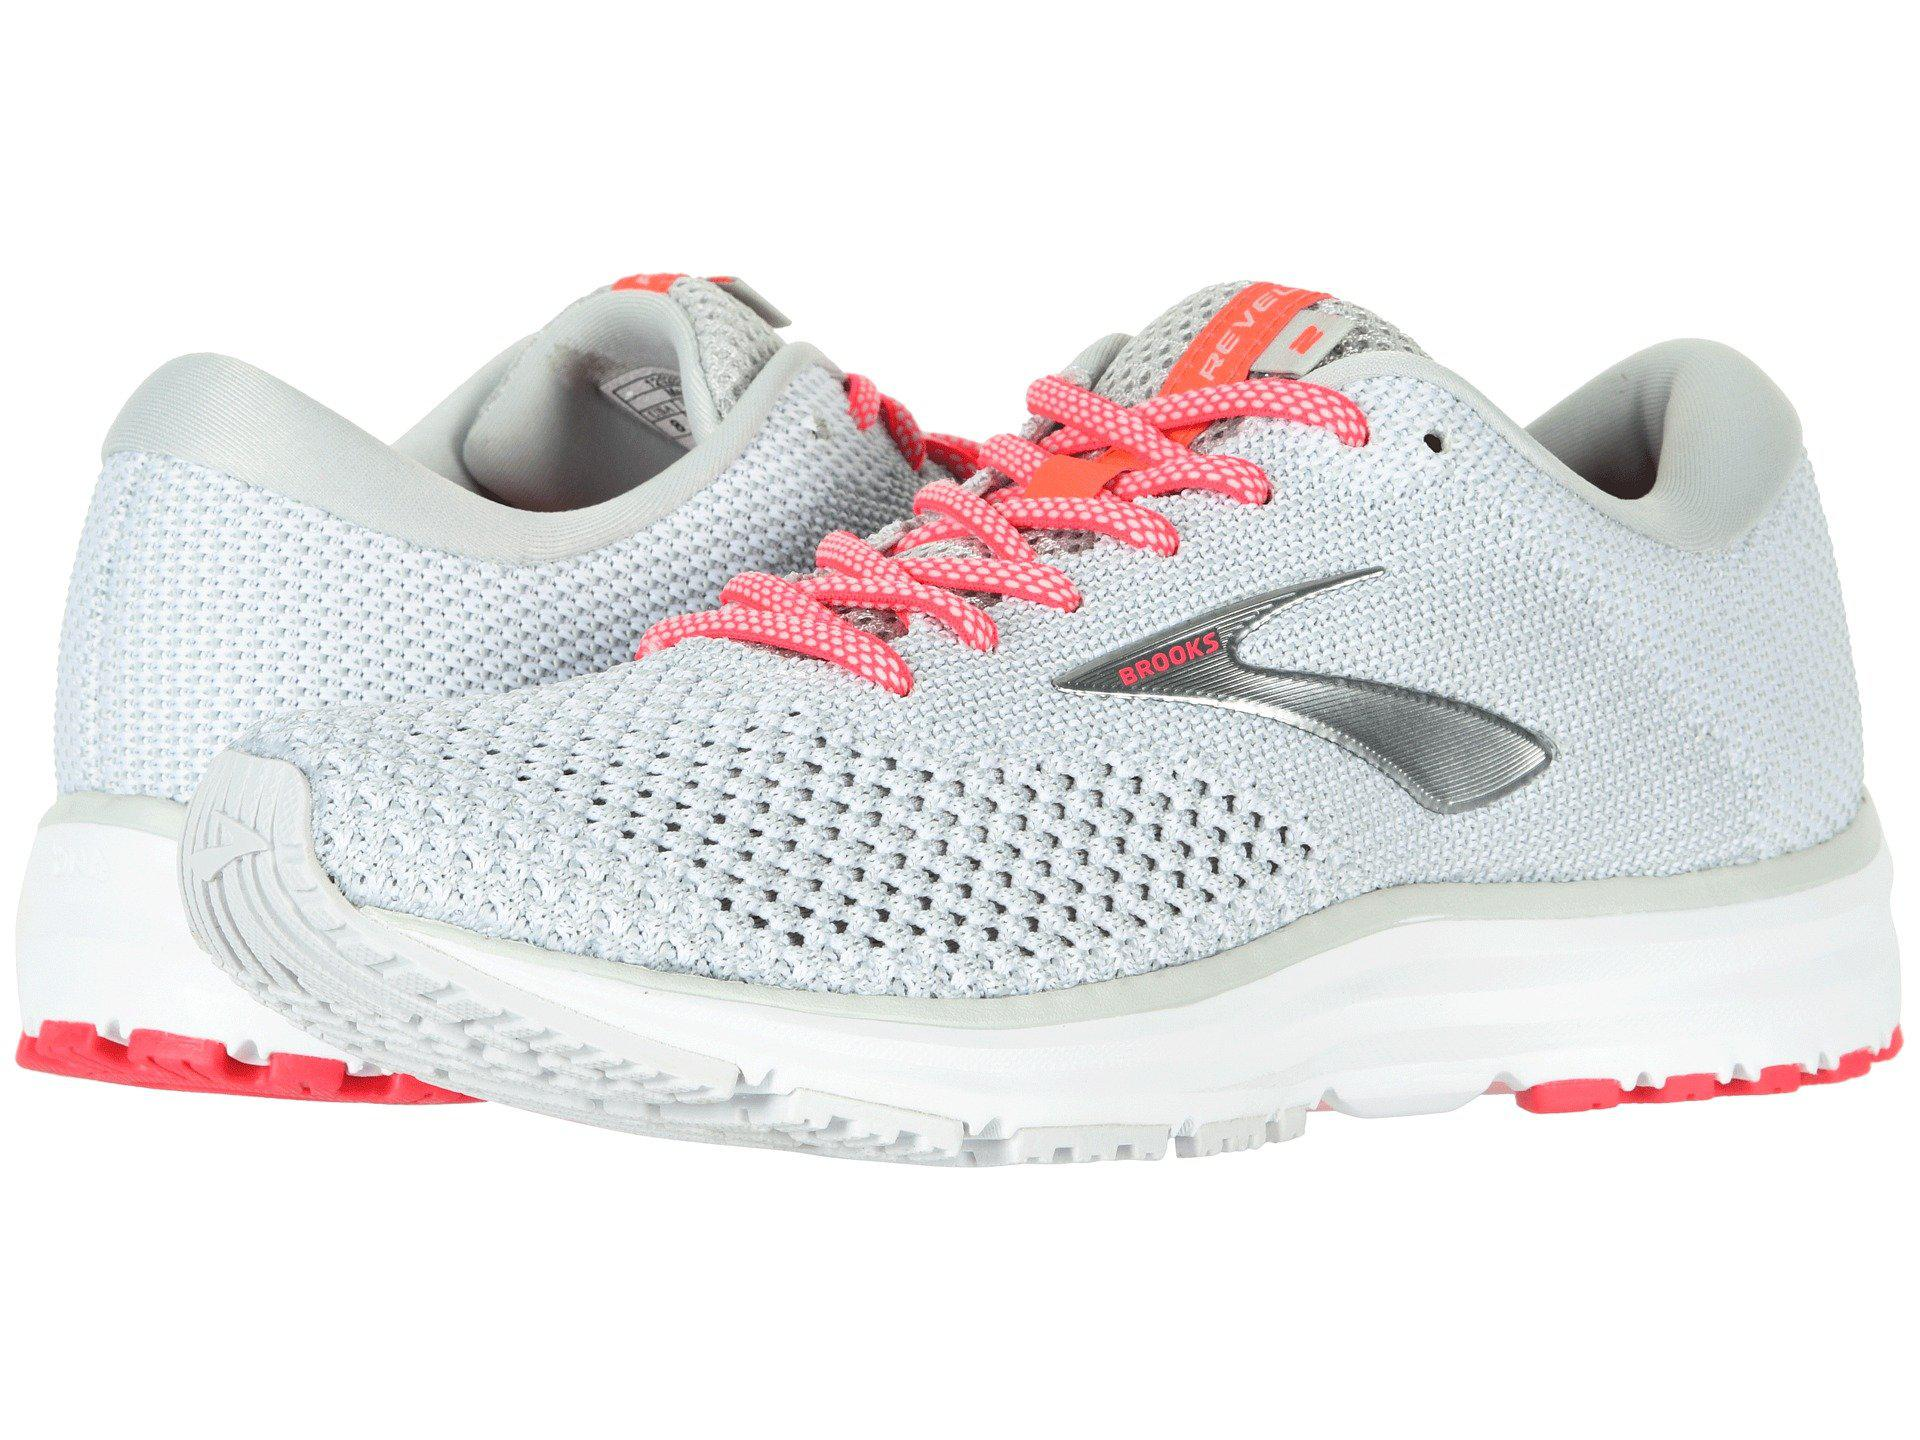 89eabf04723 Brooks - Multicolor Revel 2 (black light Grey coral) Women s Running Shoes.  View fullscreen